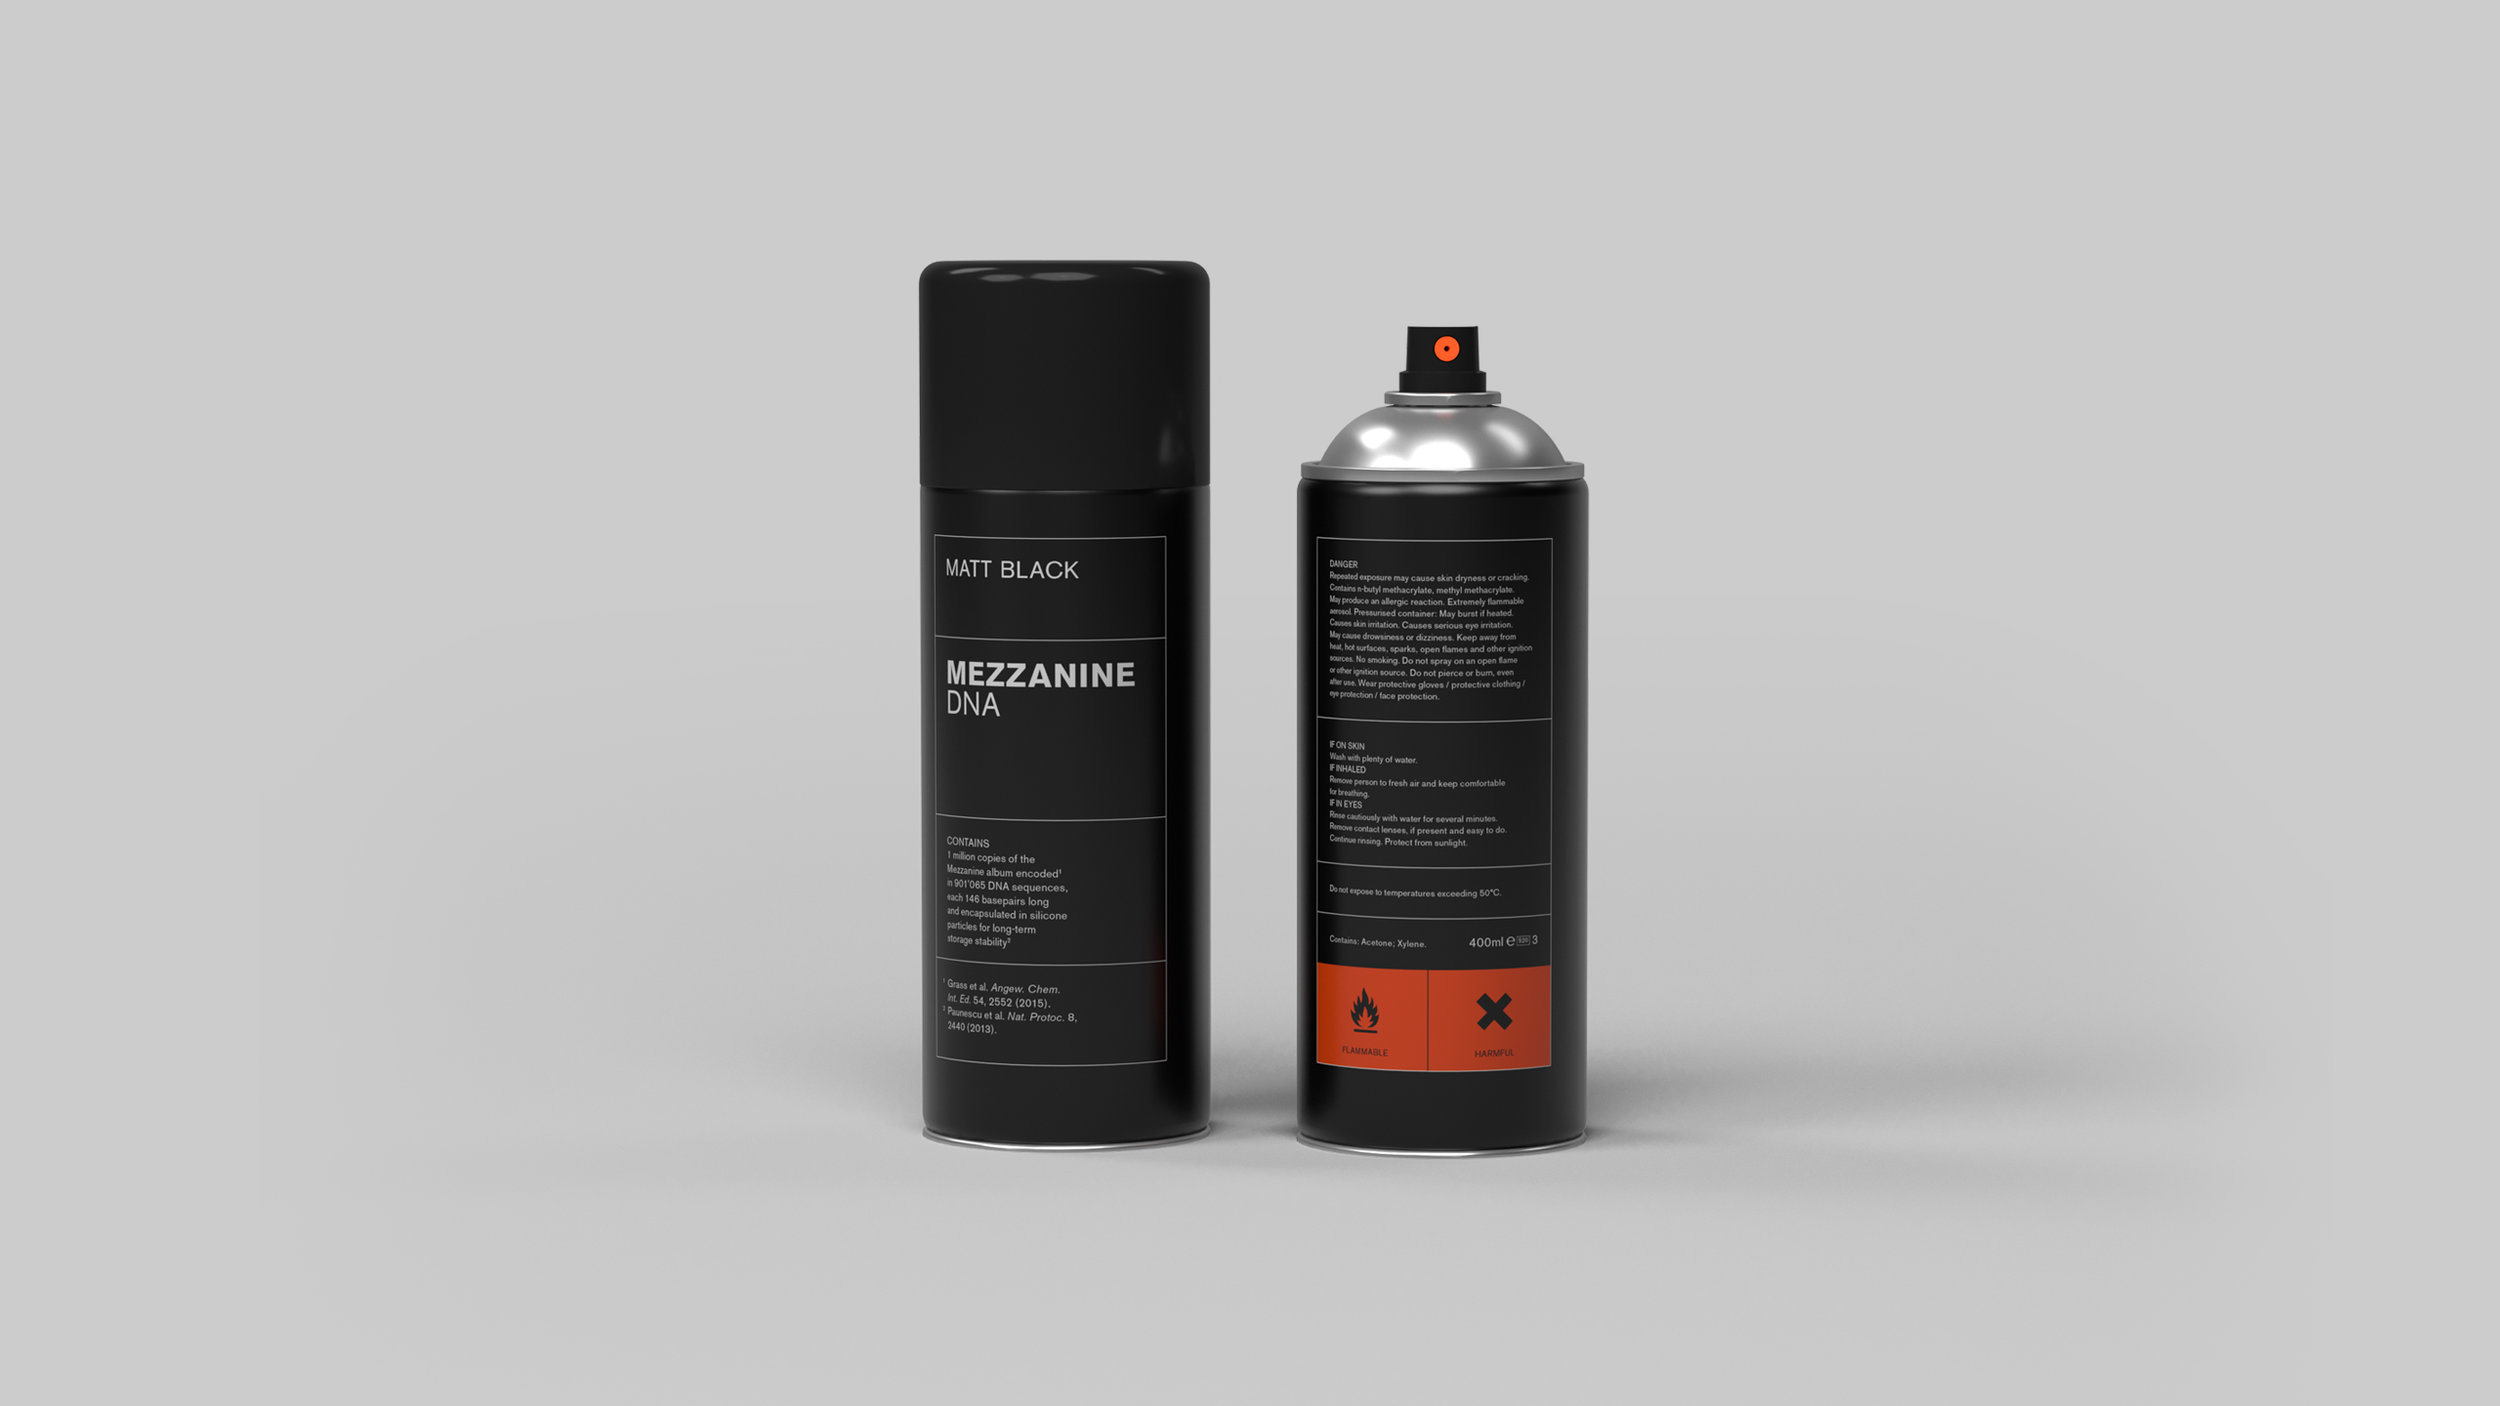 Massive Attack - DNA Spray Paint